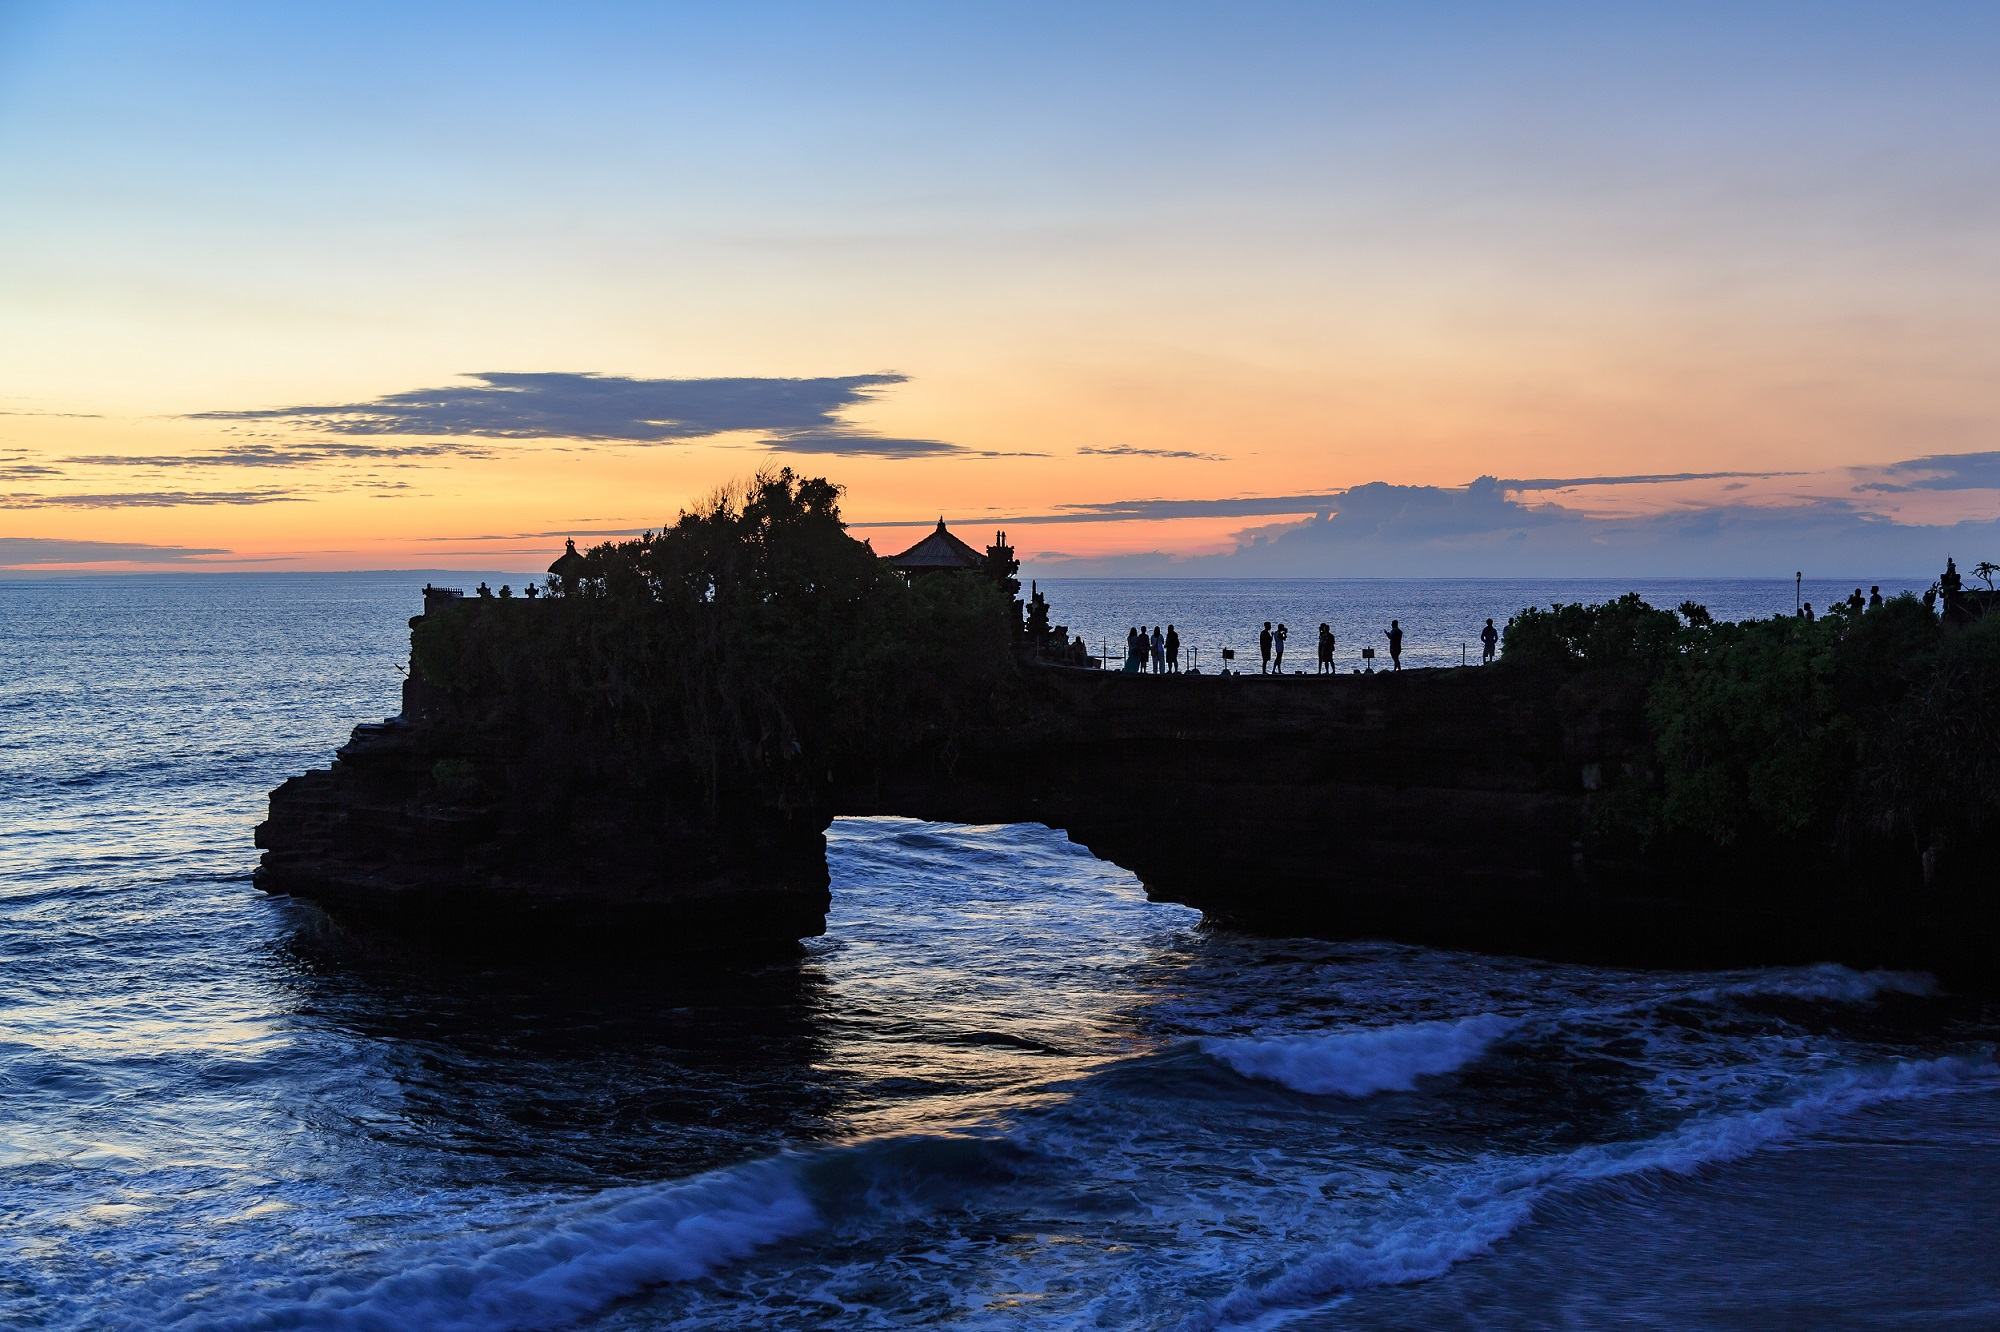 Bali 3 Days Trip at 5-star Hotels. Tour to Uluwatu, Kintamani & Ubud